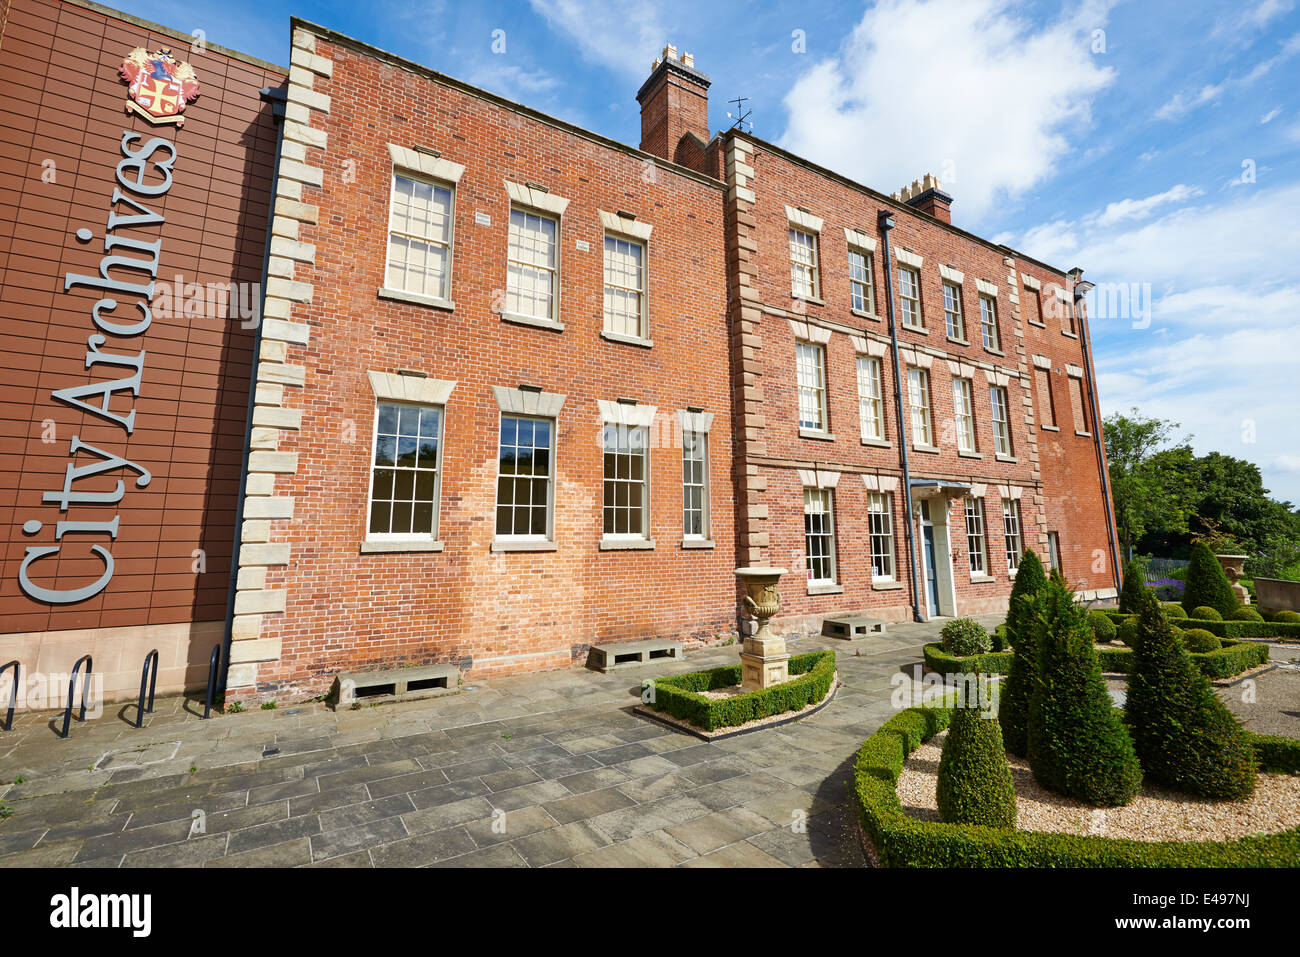 City Archives Molineux Hotel Building Whitmore Hill Wolverhampton West Midlands UK Stock Photo